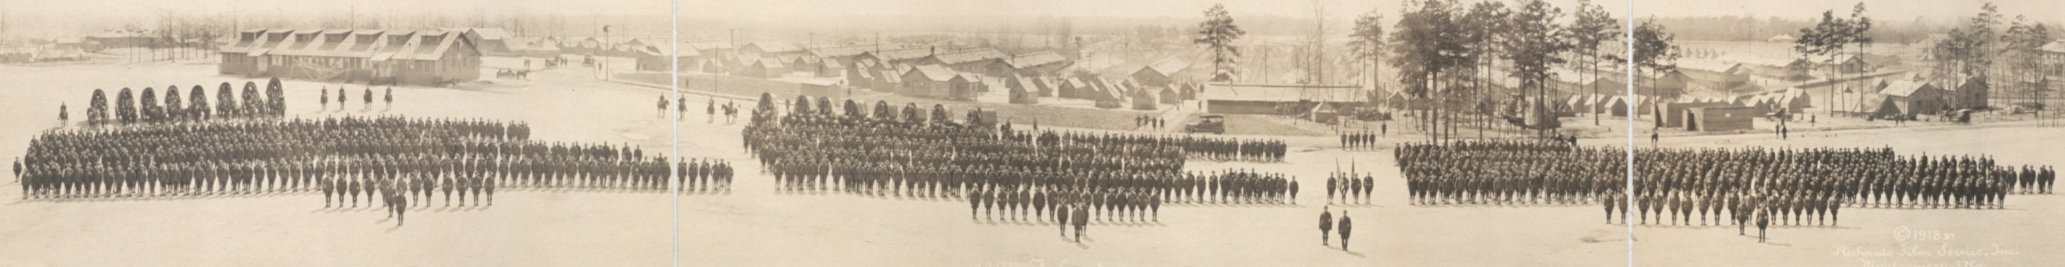 Camp Sevier, S.C., March 8th, 1918